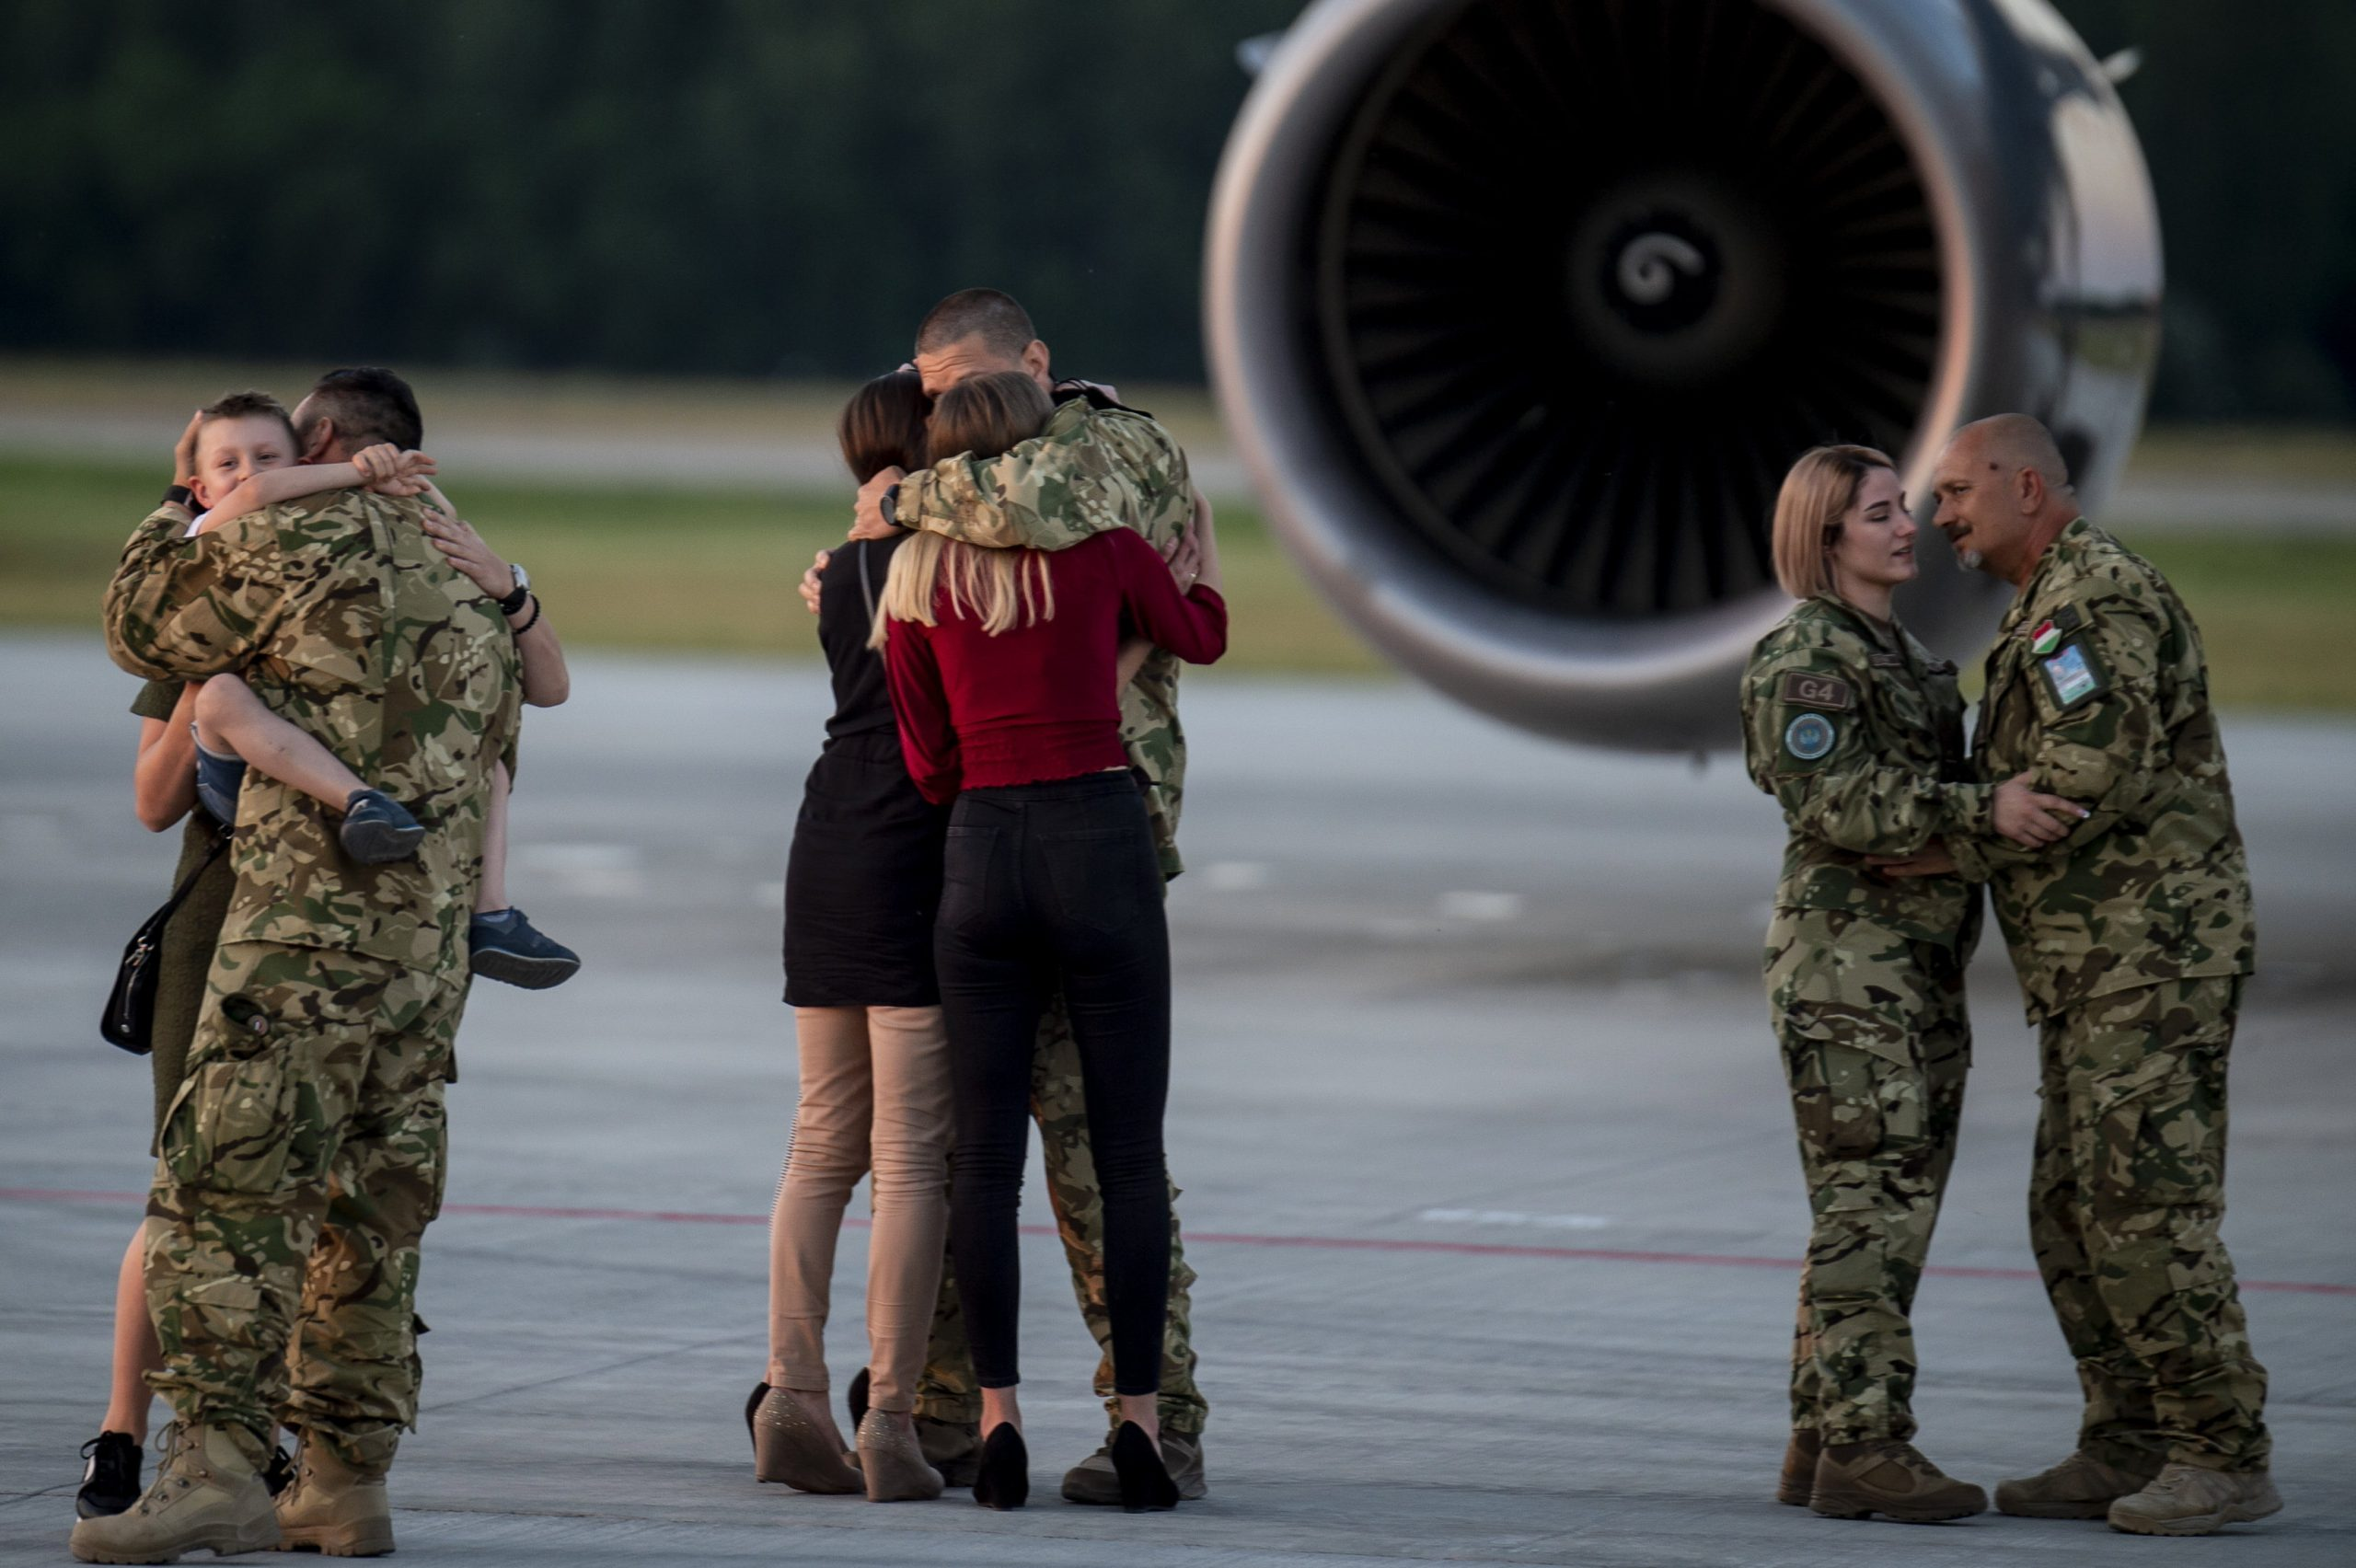 Last Hungarian Afghanistan Mission Soldiers Arrive Back - with PHOTOS!